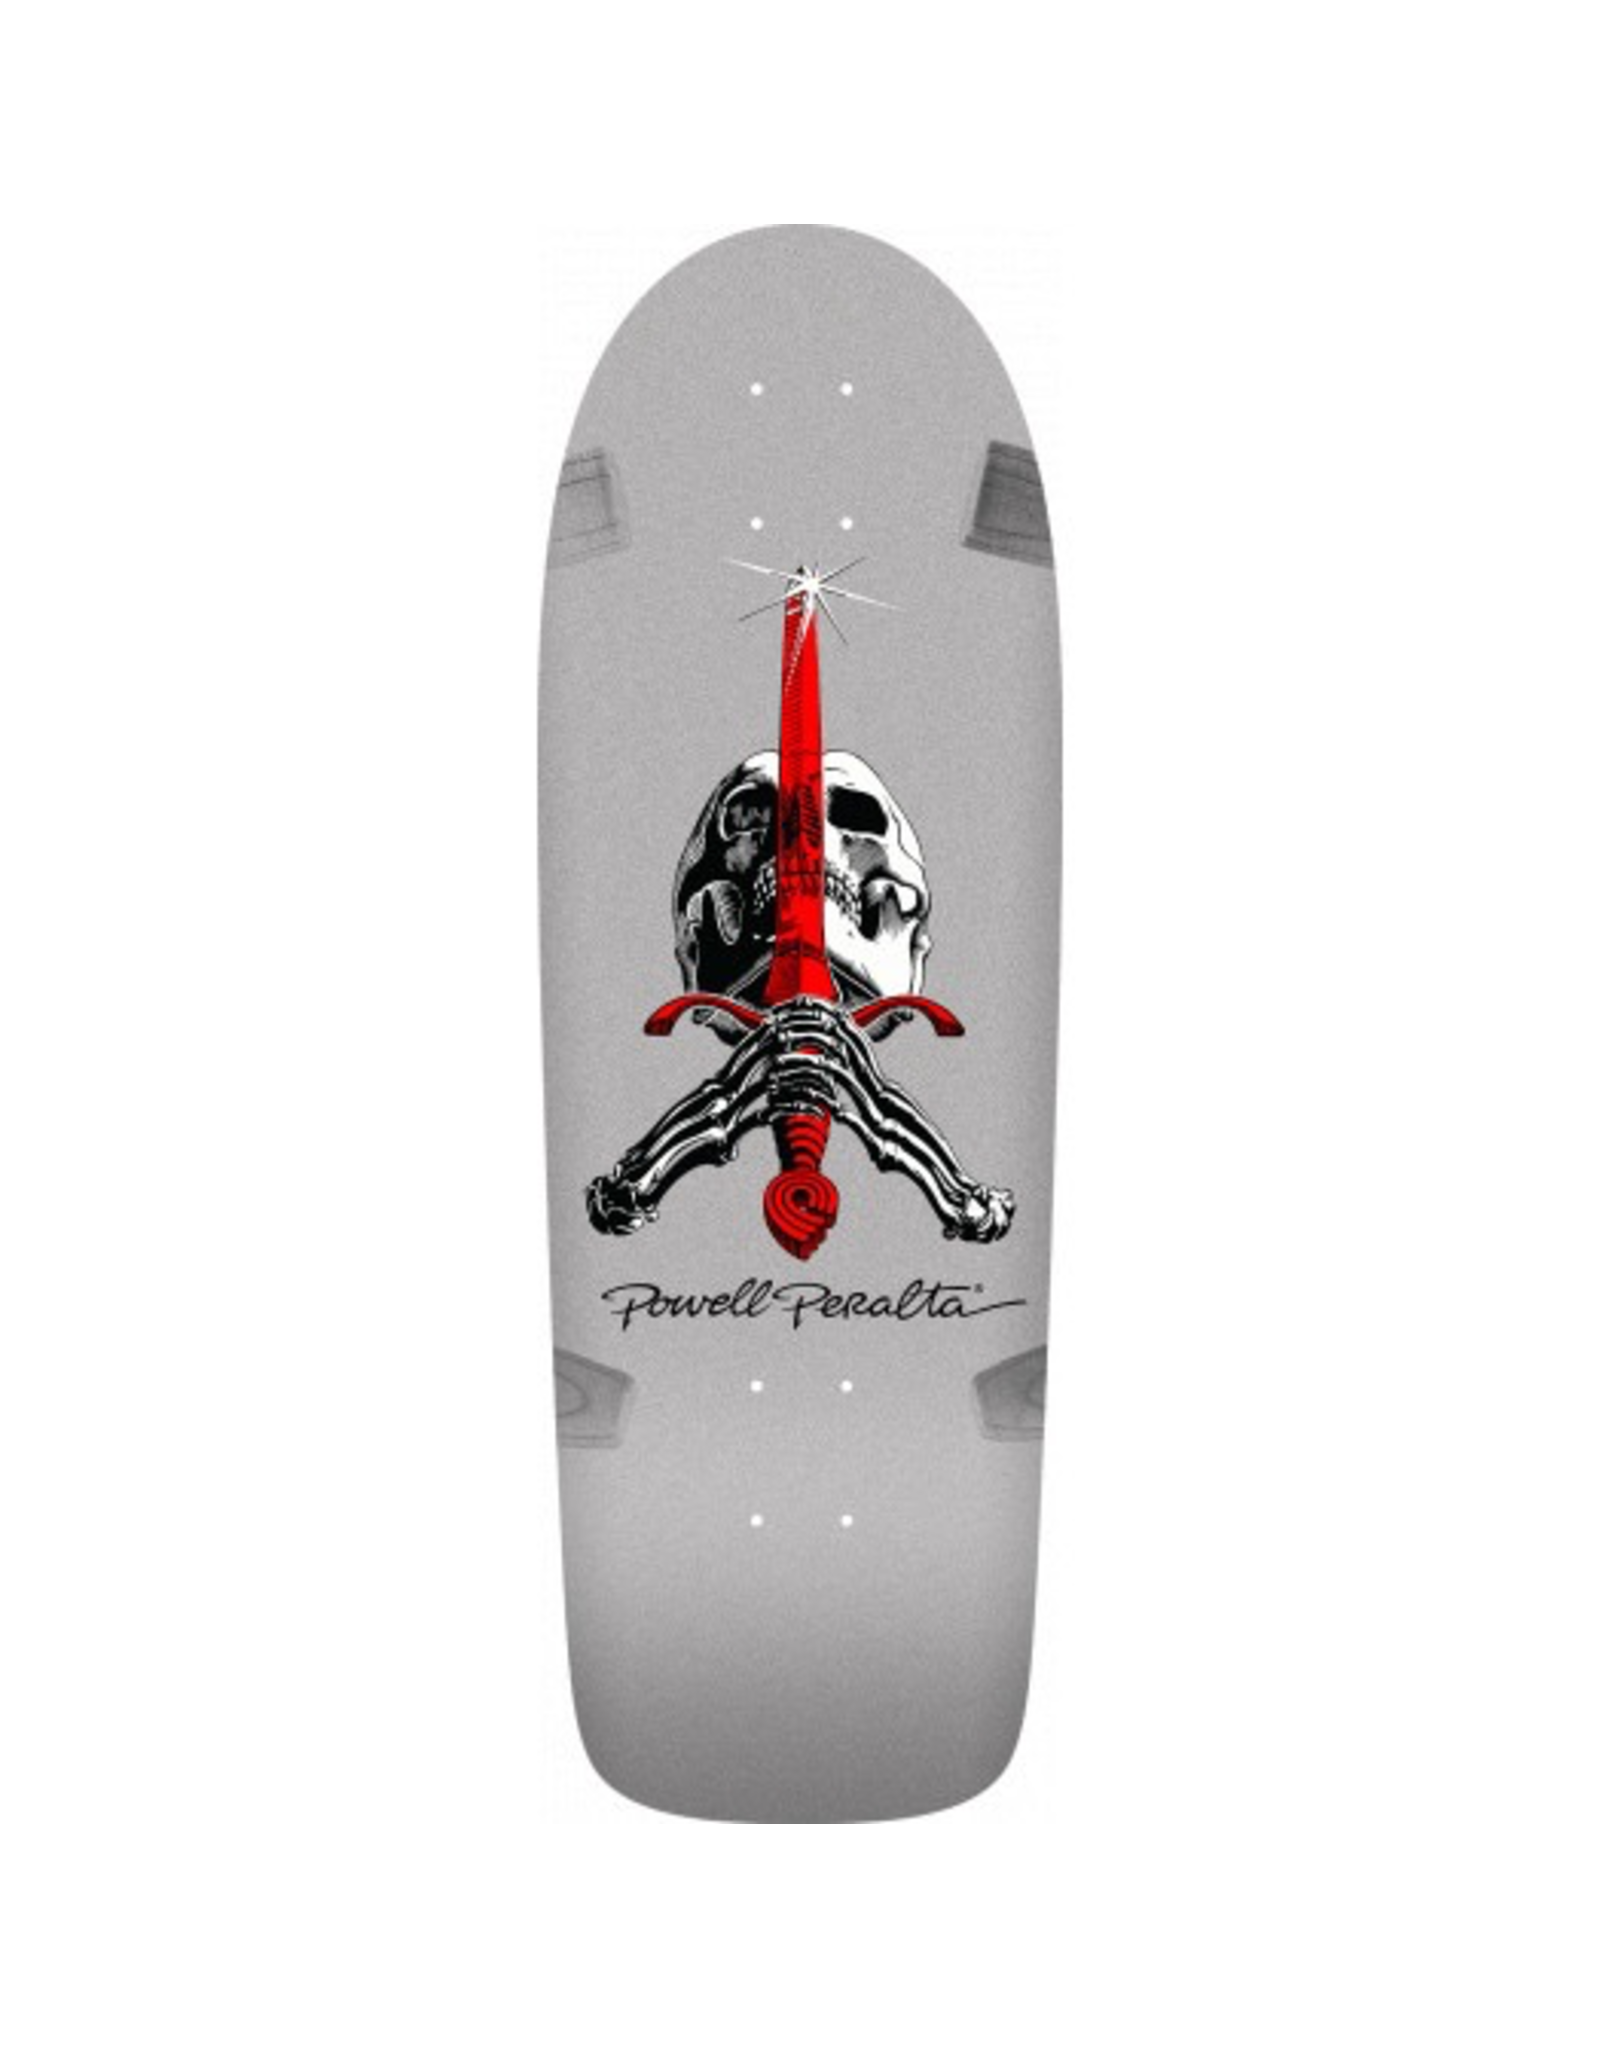 POWELL Powell Peralta Ray Rodriguez OG Skull and Sword Skateboard Deck Silver - 10 x 30